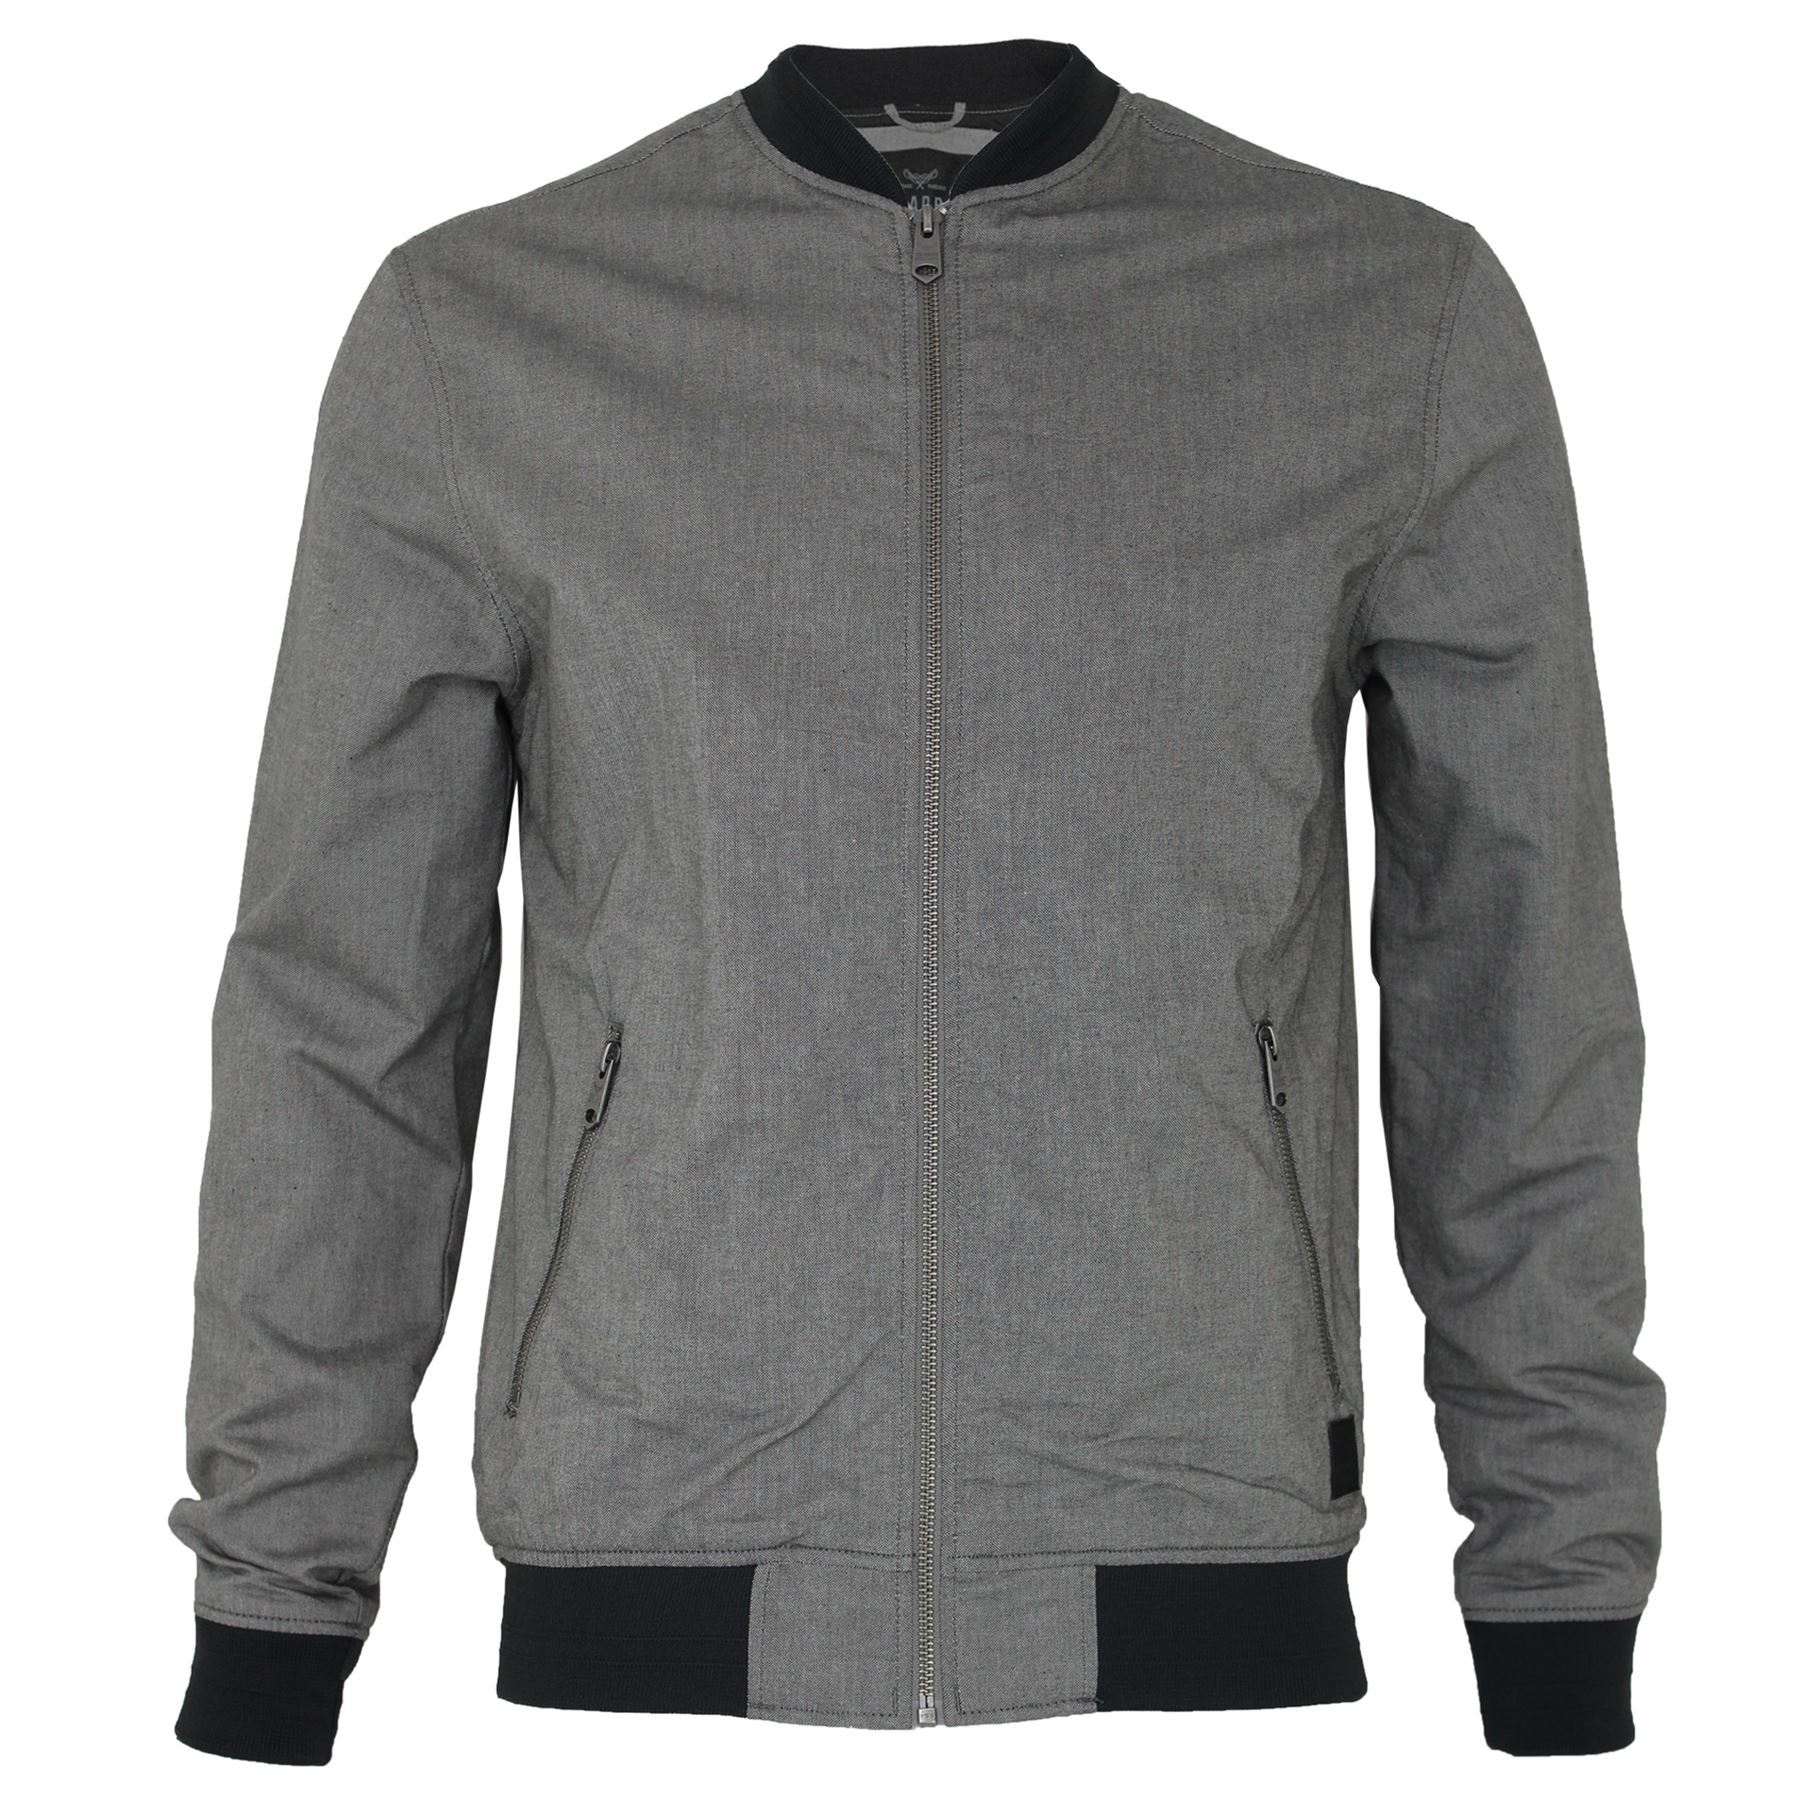 Find great deals on eBay for thin jacket men. Shop with confidence.